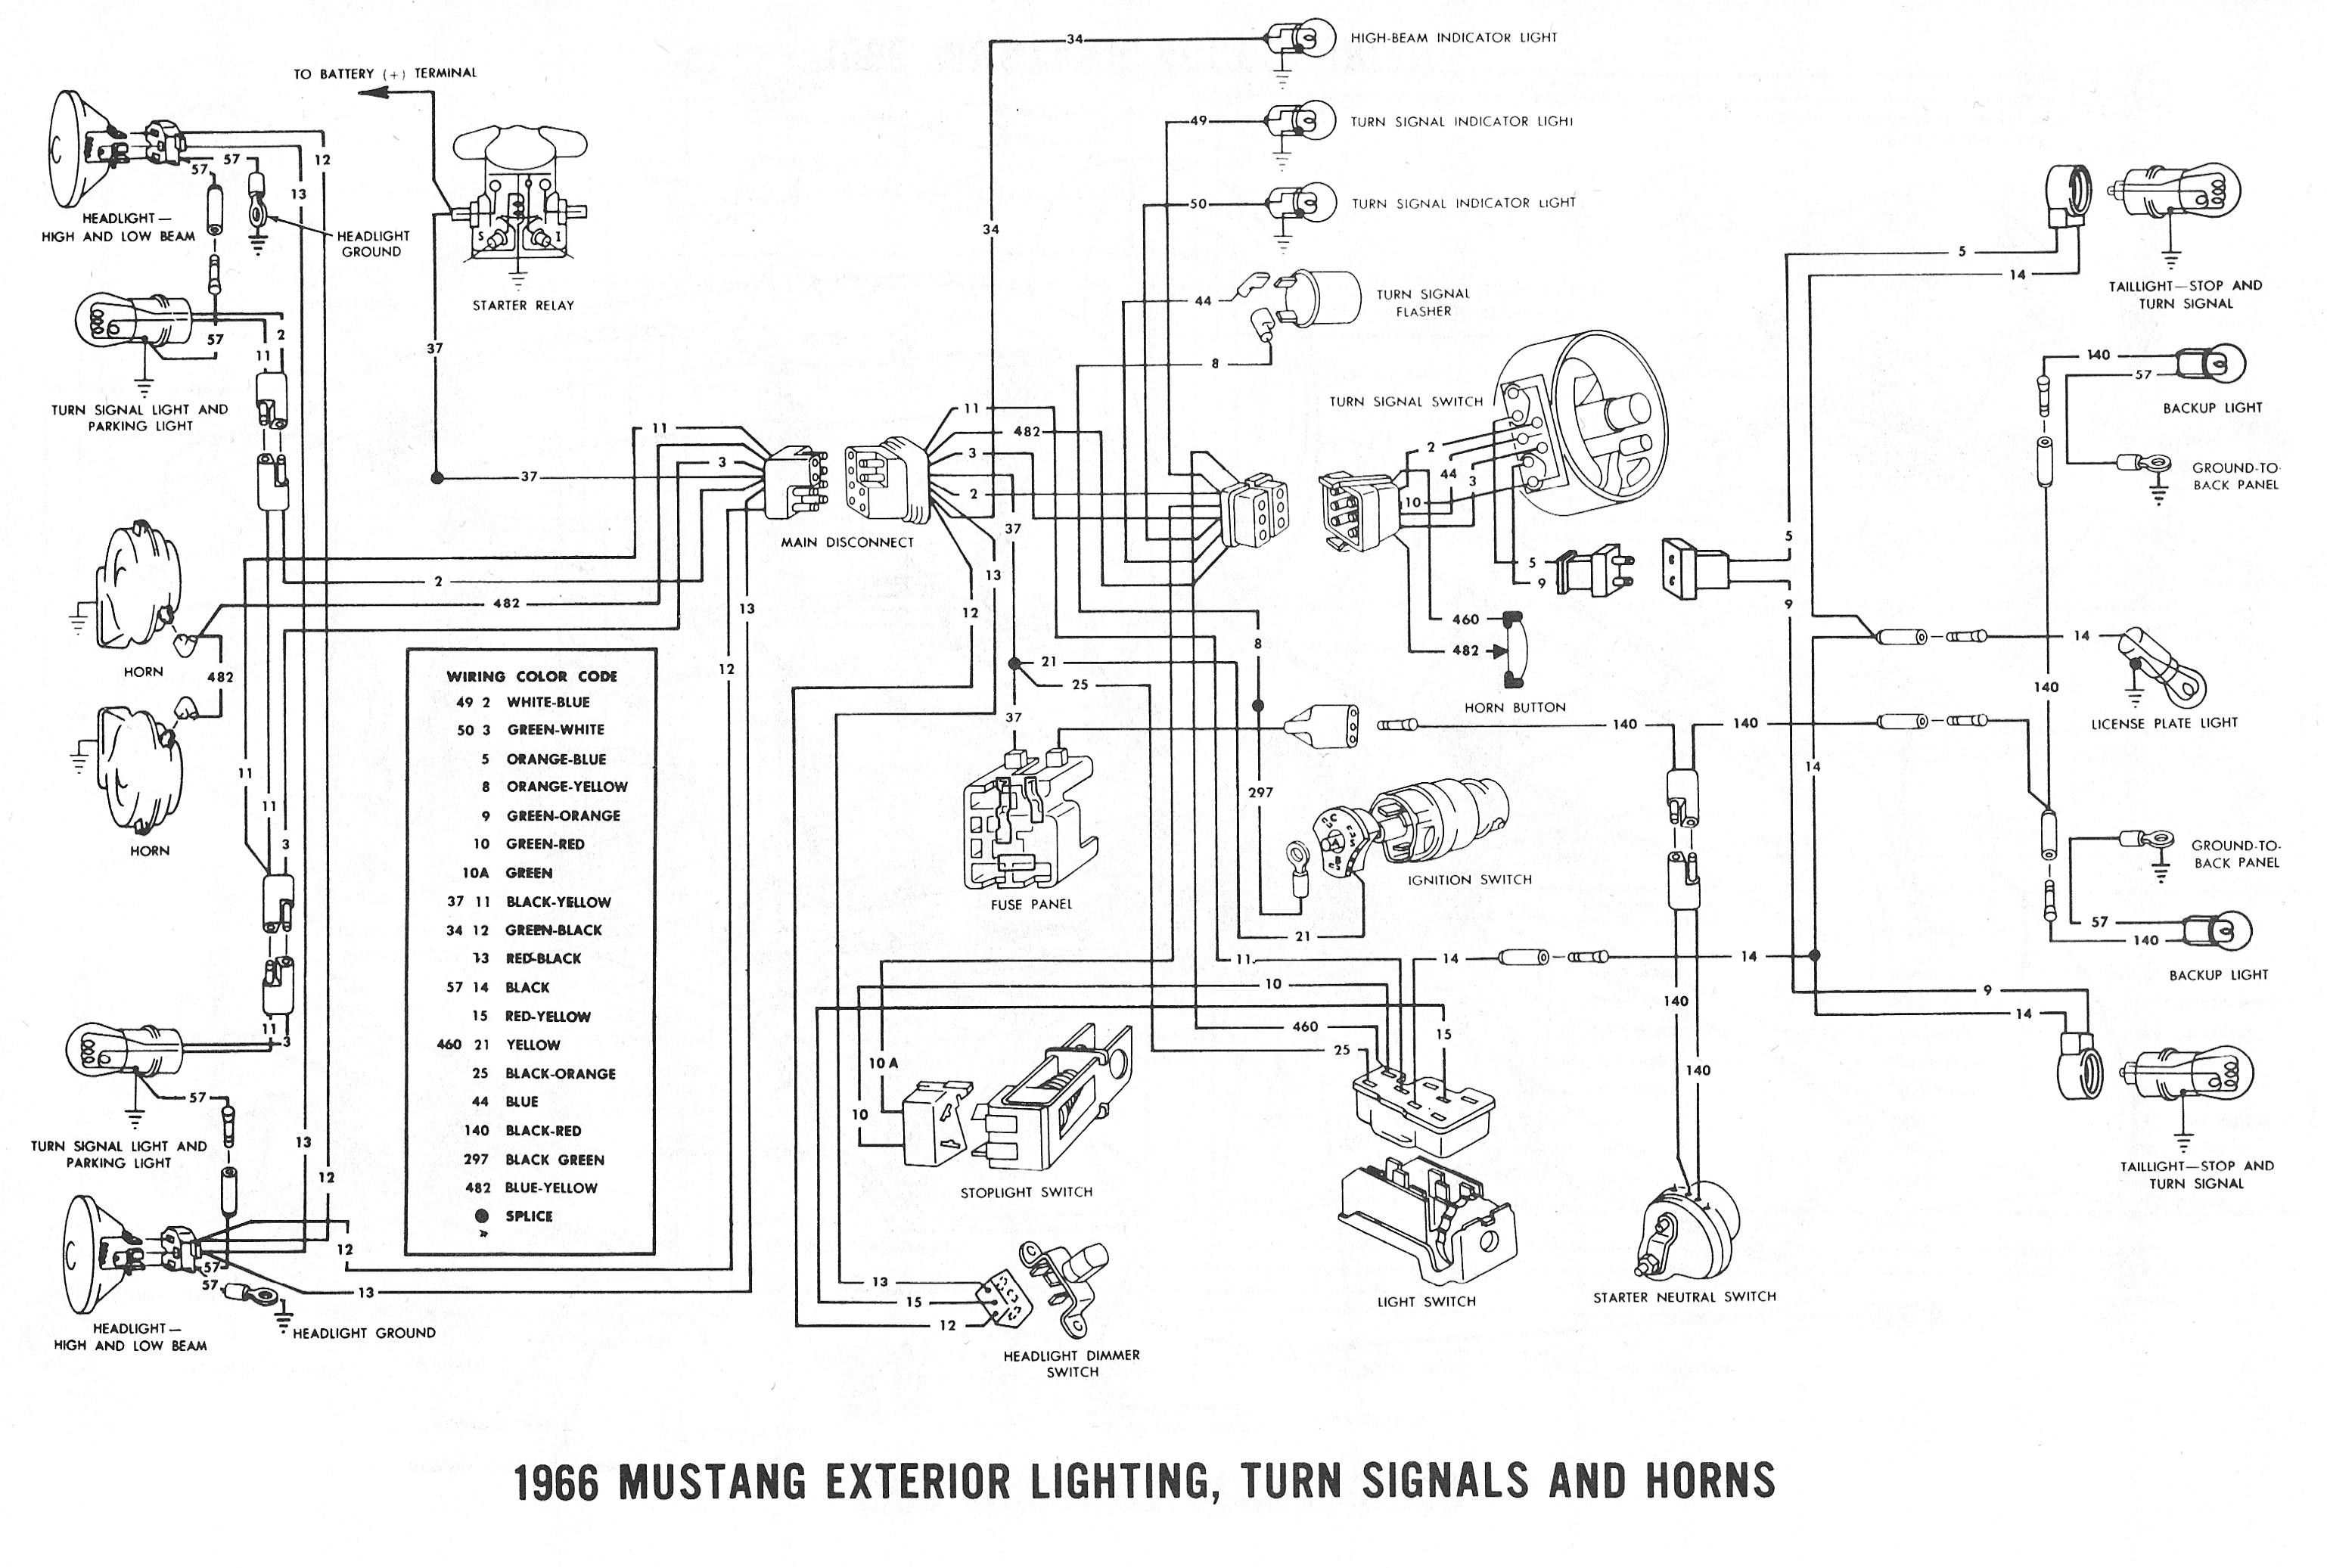 [SCHEMATICS_48DE]  83E7B Stereo Wiring Schematic For Ford F 150 | Wiring Library | 1966 Ford Radio Wiring Diagram |  | Wiring Library